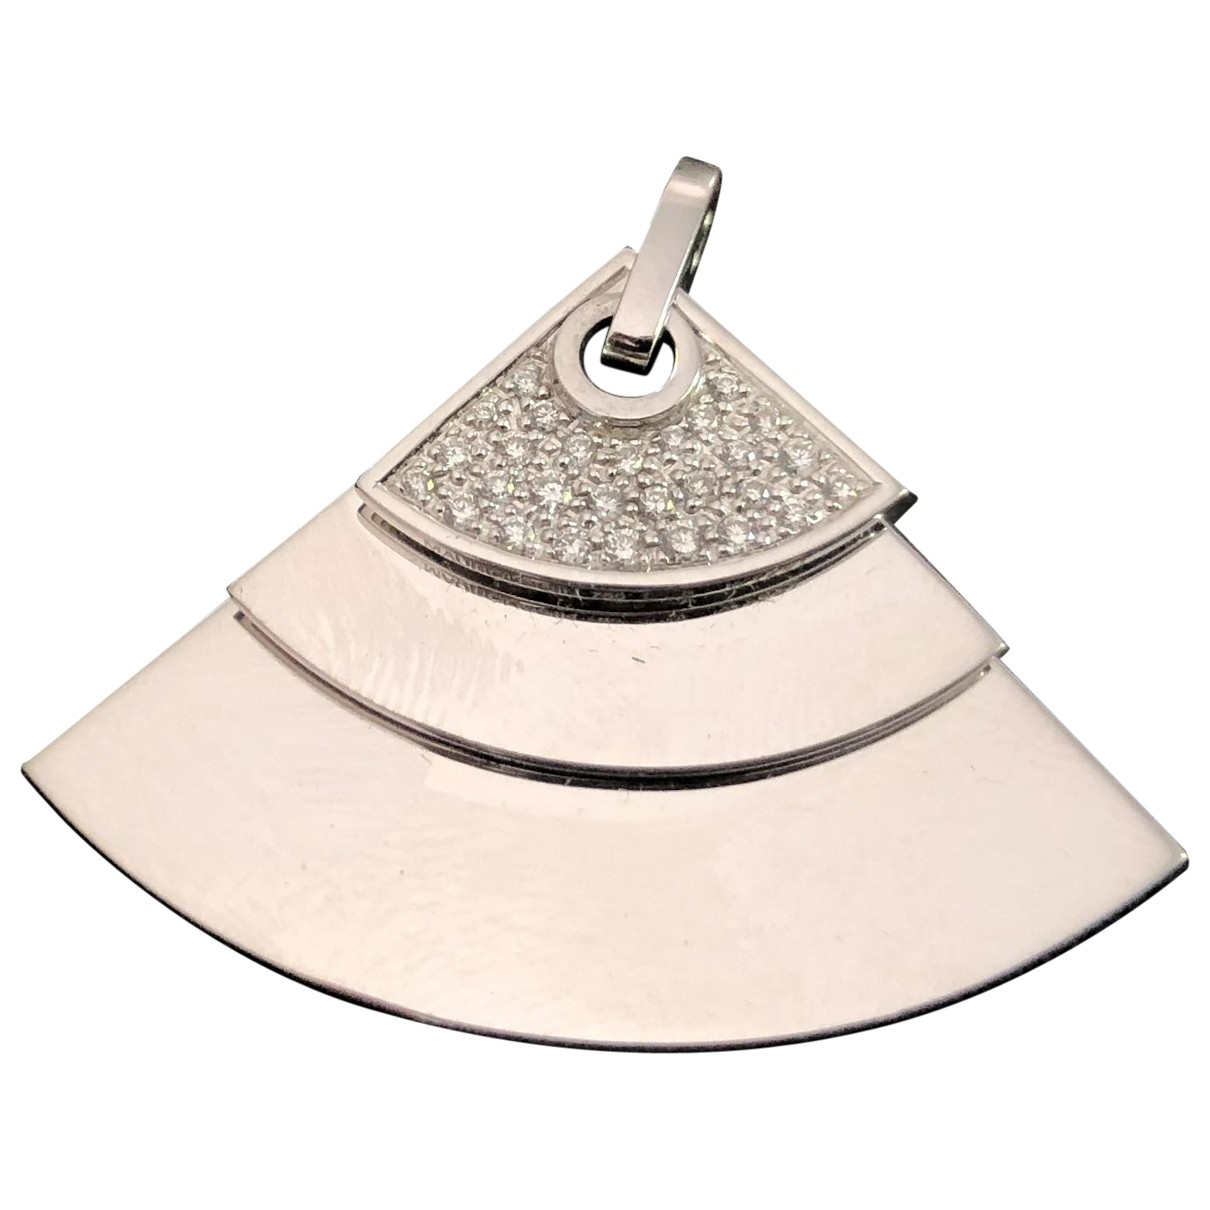 Mauboussin \N Silver White gold pendant for Women \N